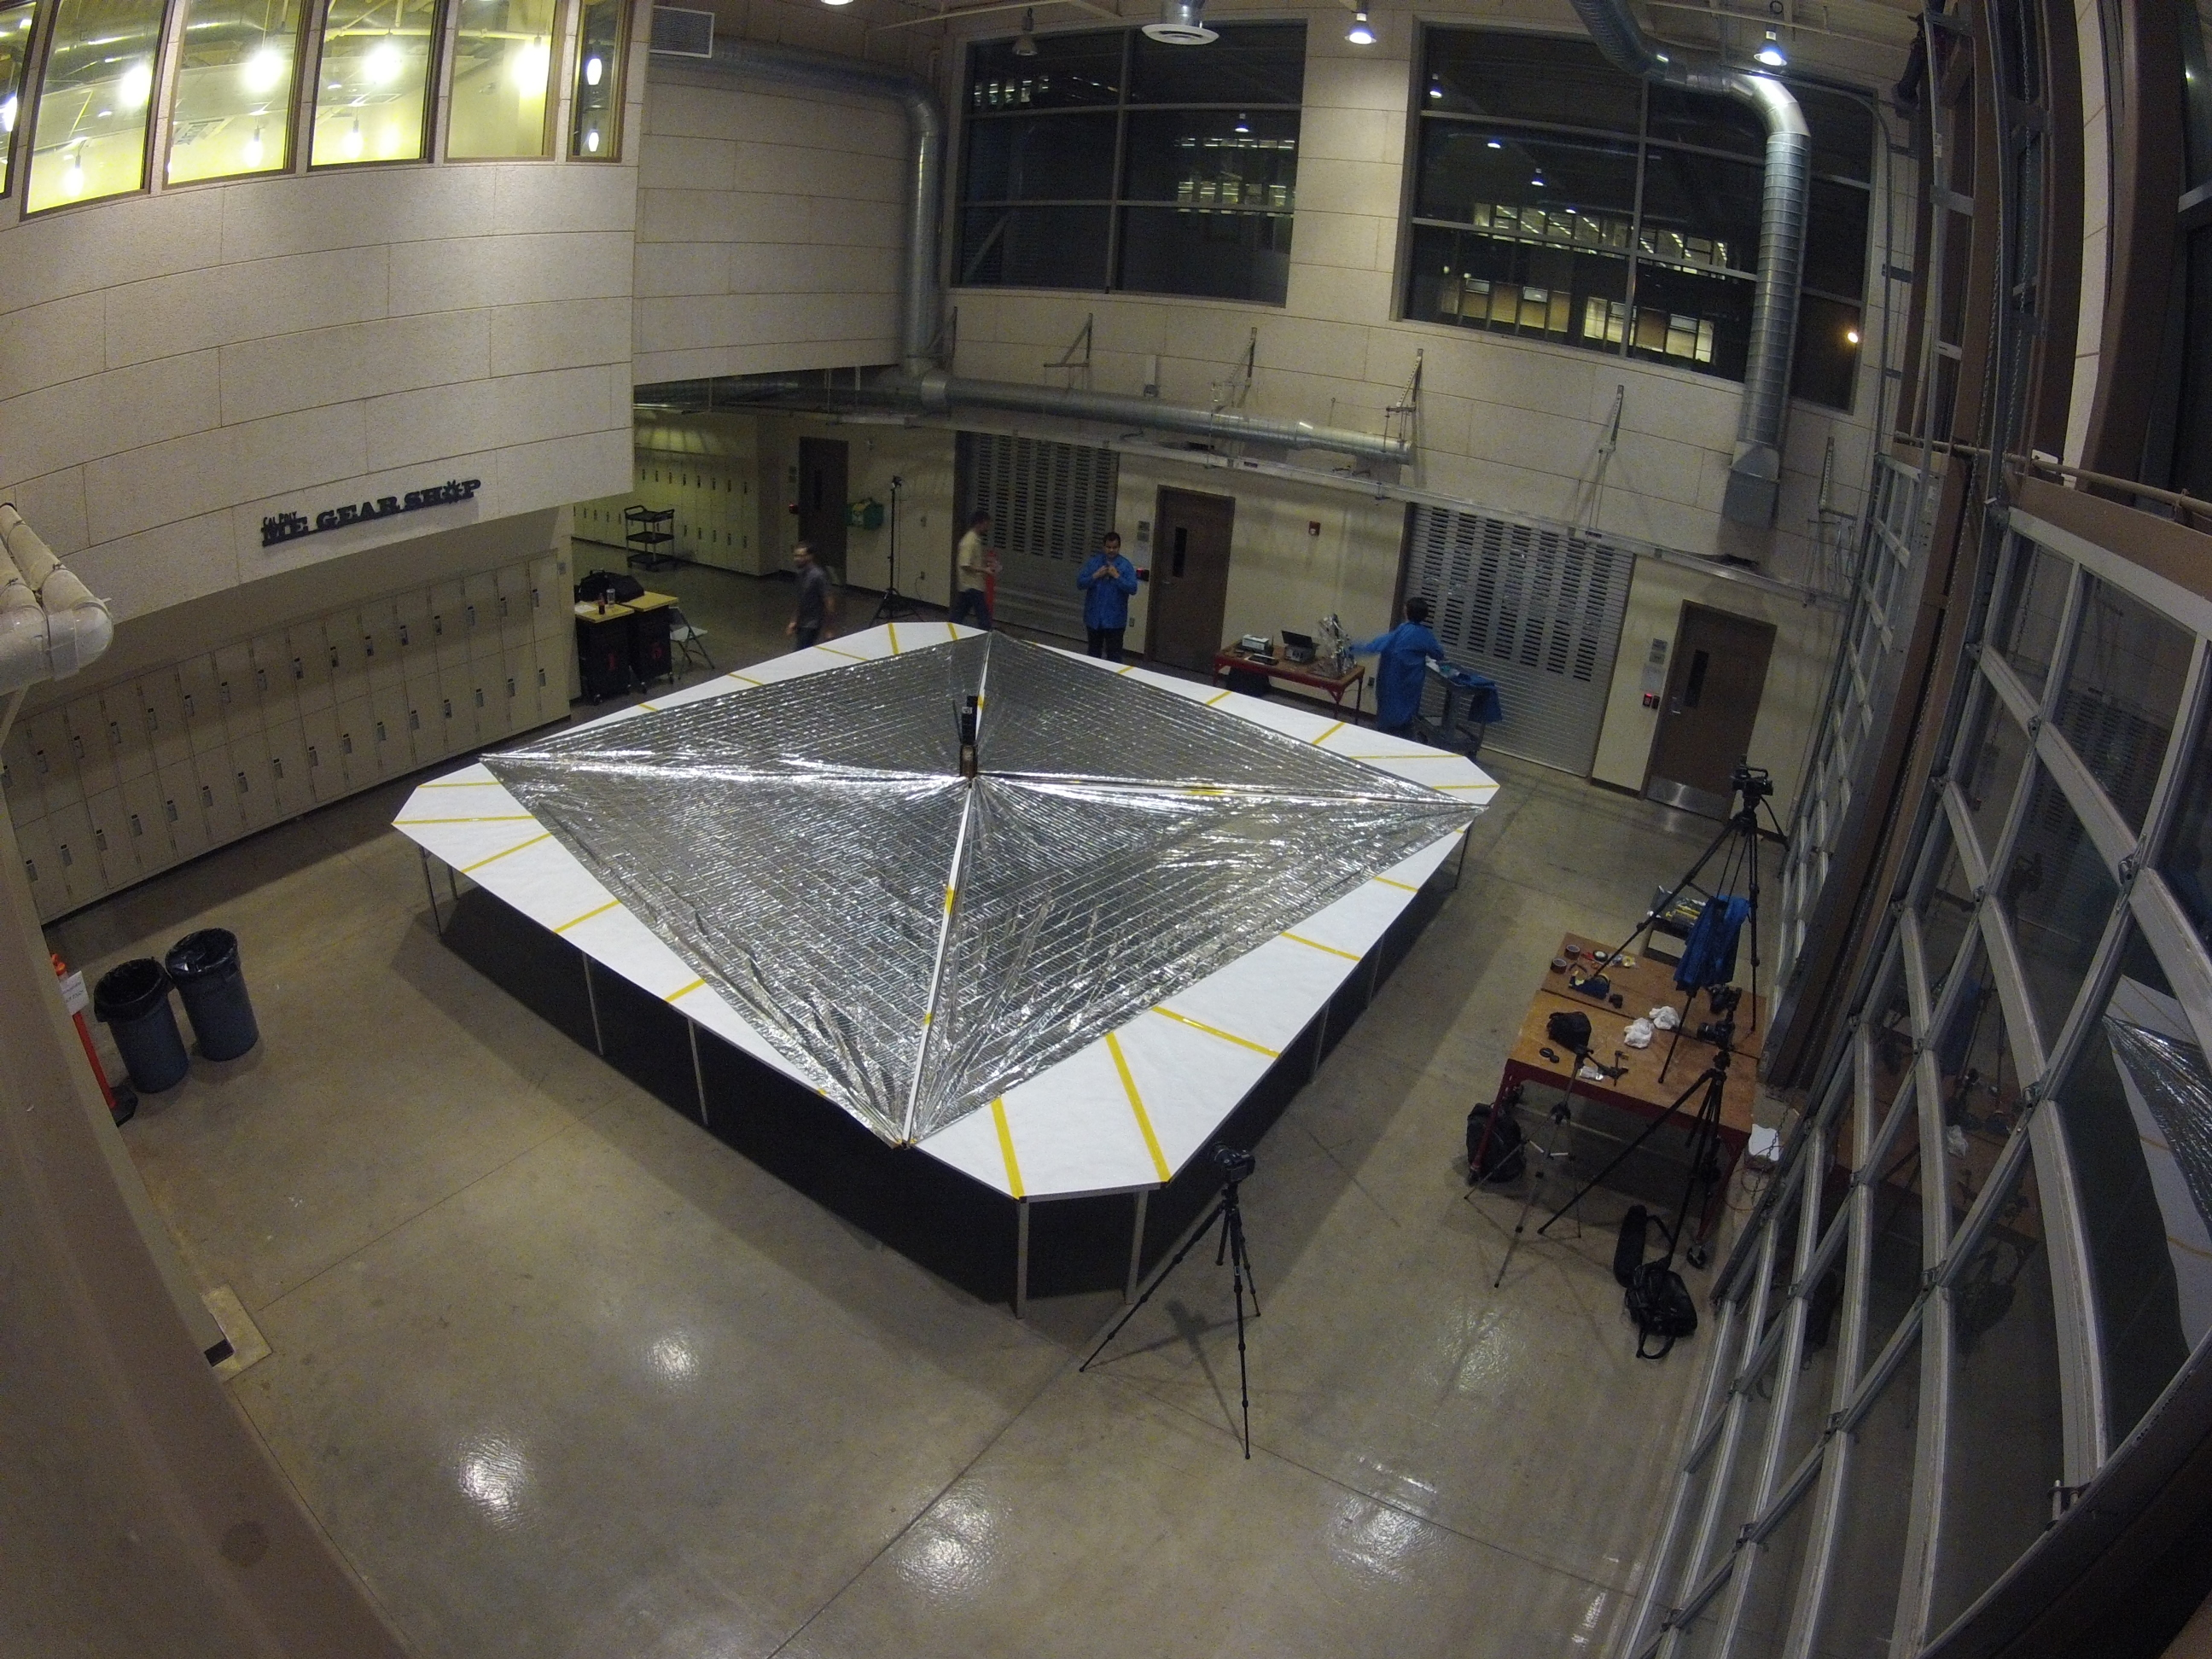 LightSail spreads its sails. Credit: Justin Foley